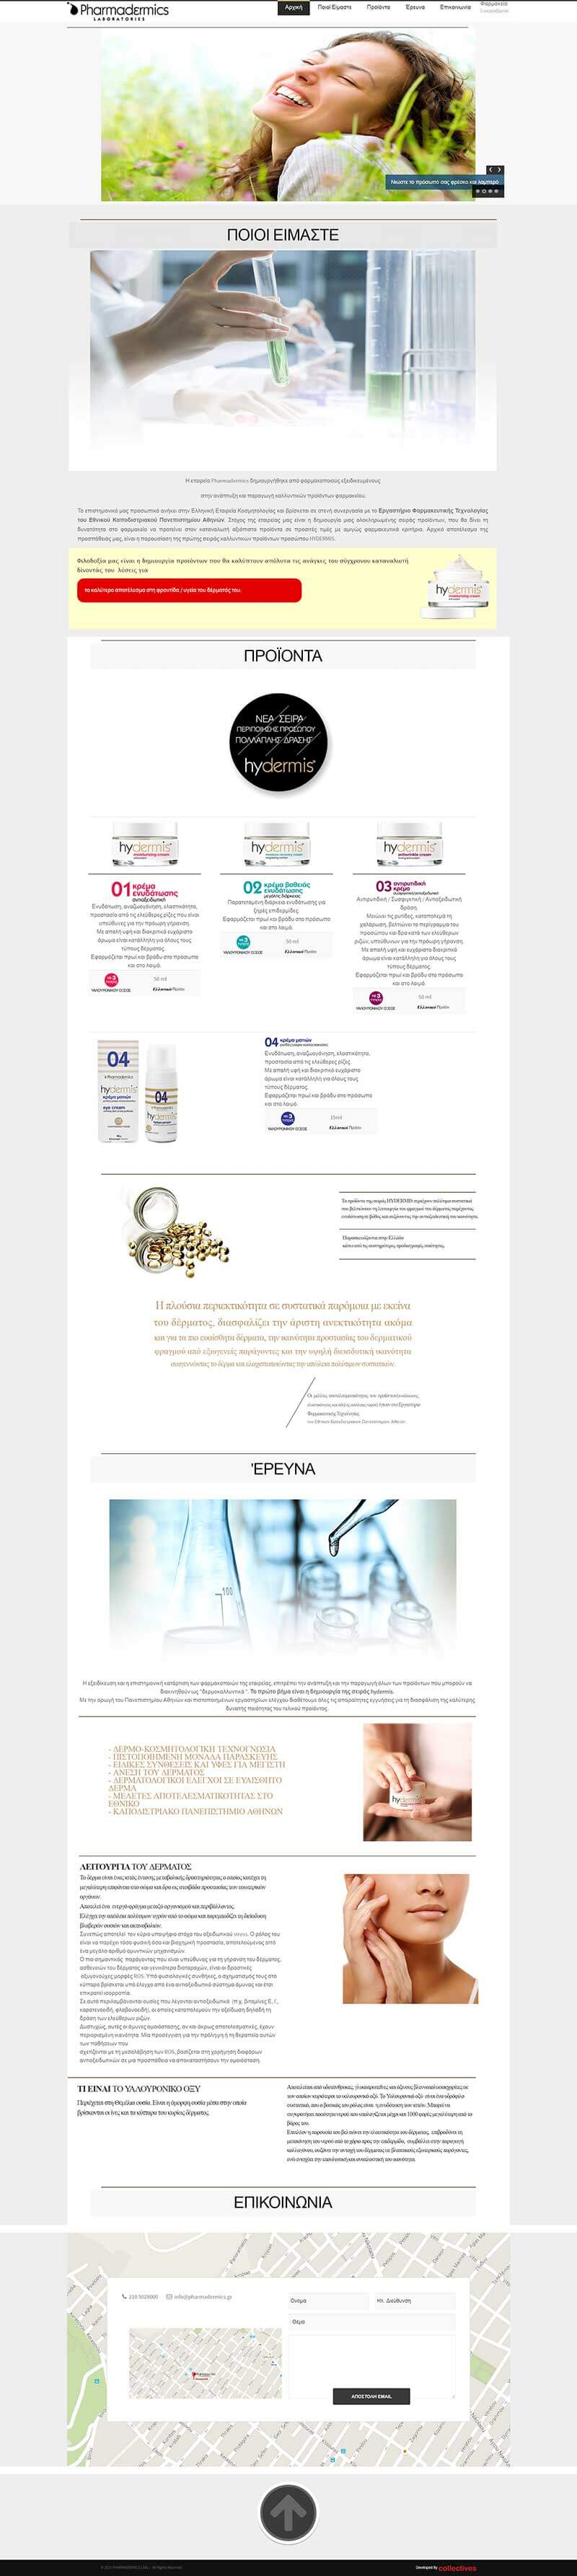 Pharmadermics S.A. | Portfolio Website